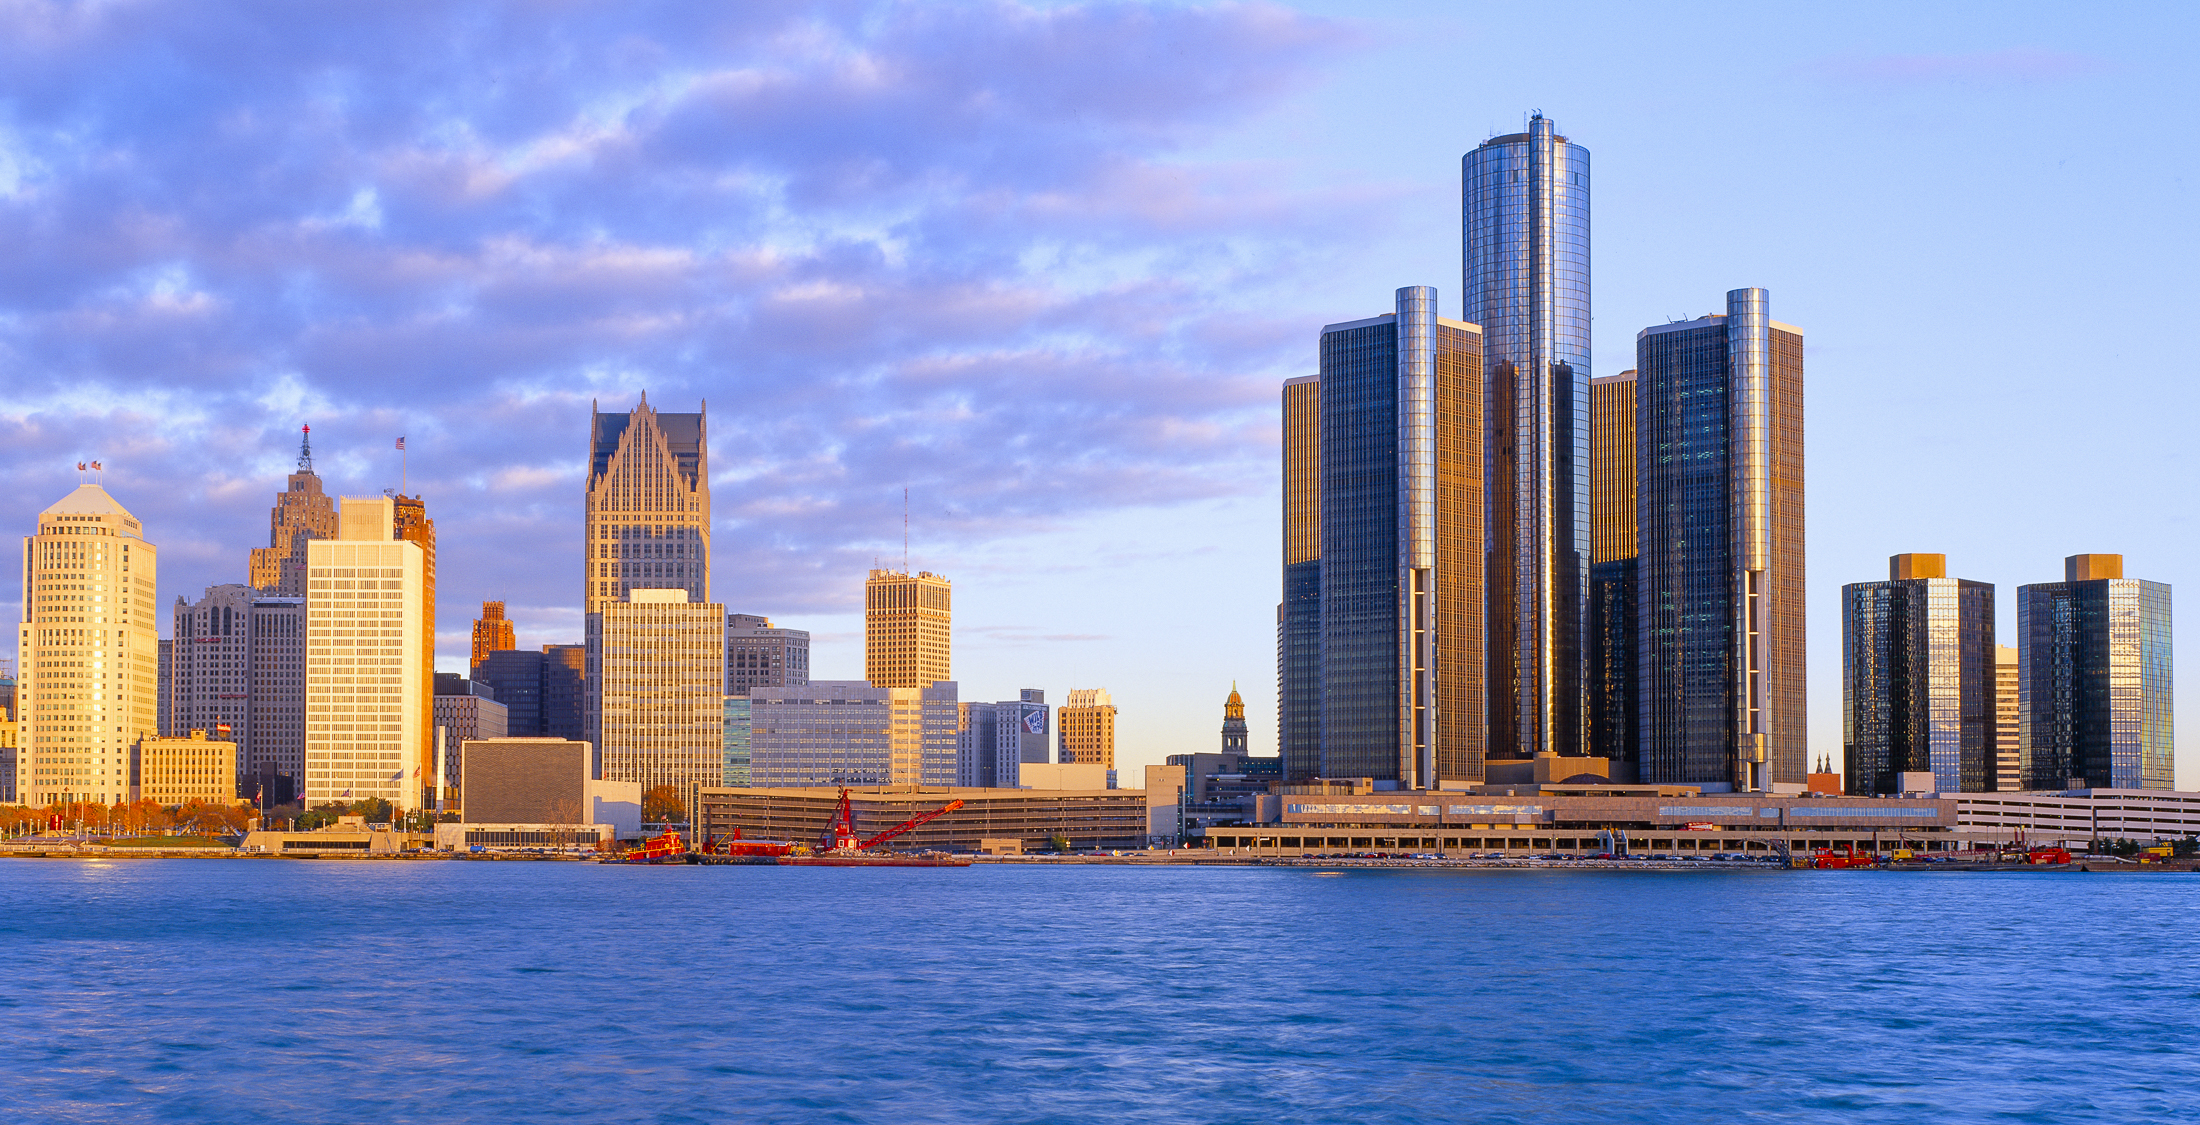 What u s cities have the cheapest rent detroit memphis What city has the cheapest rent